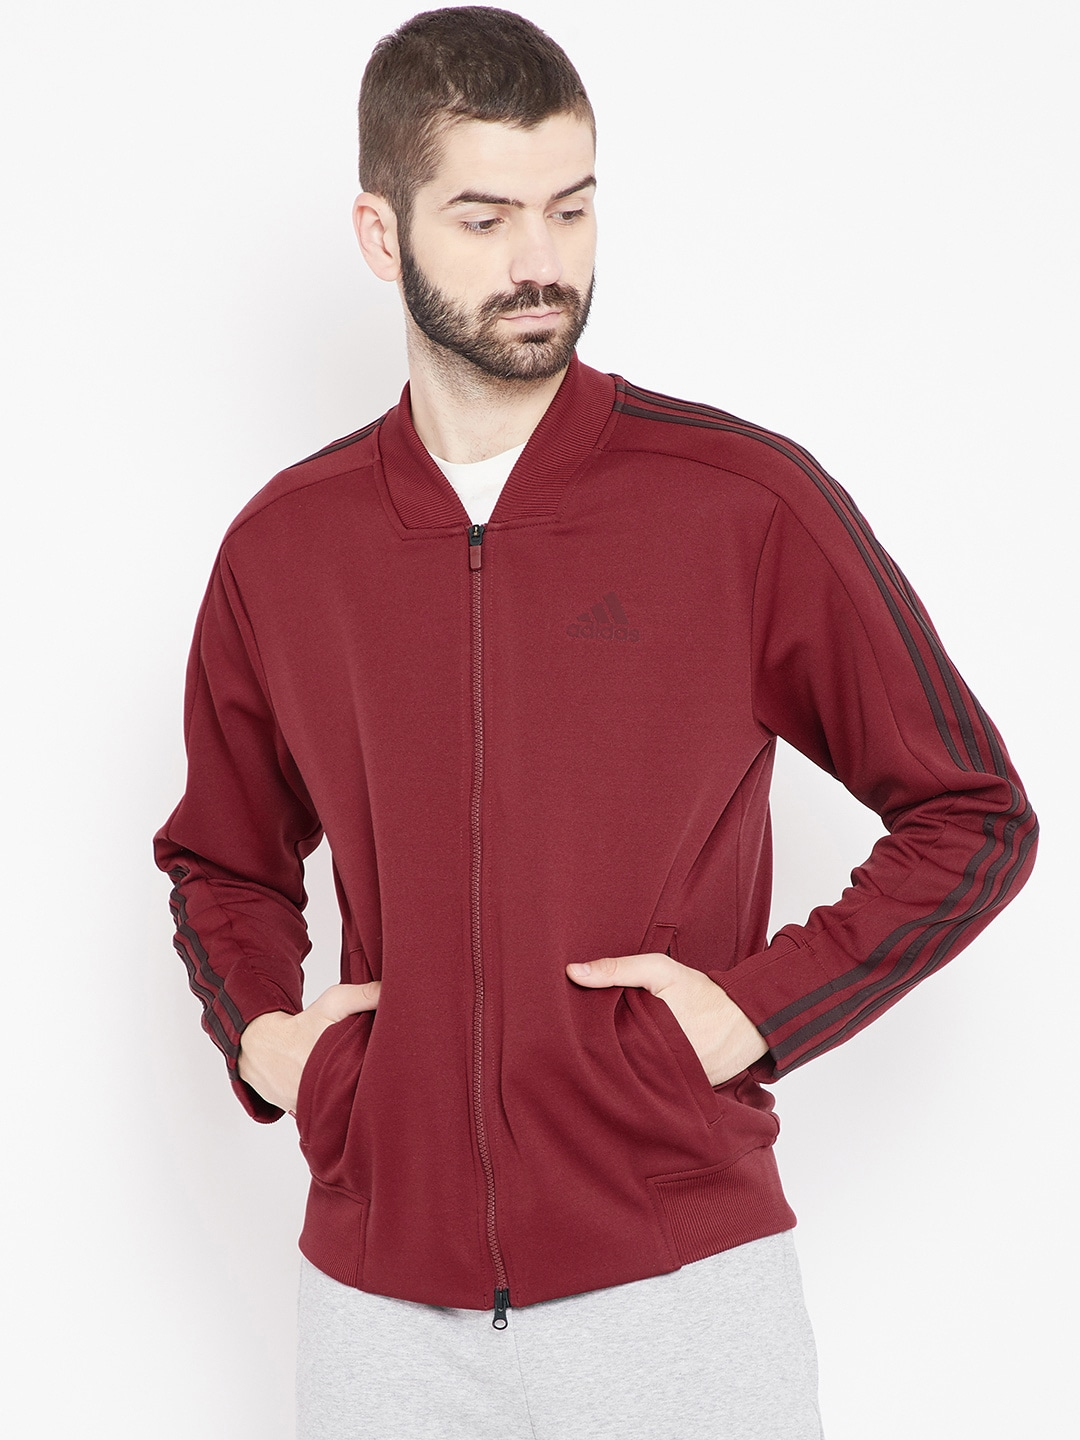 bfe29bbbf32d Polyester Jackets - Buy Polyester Jackets Online in India